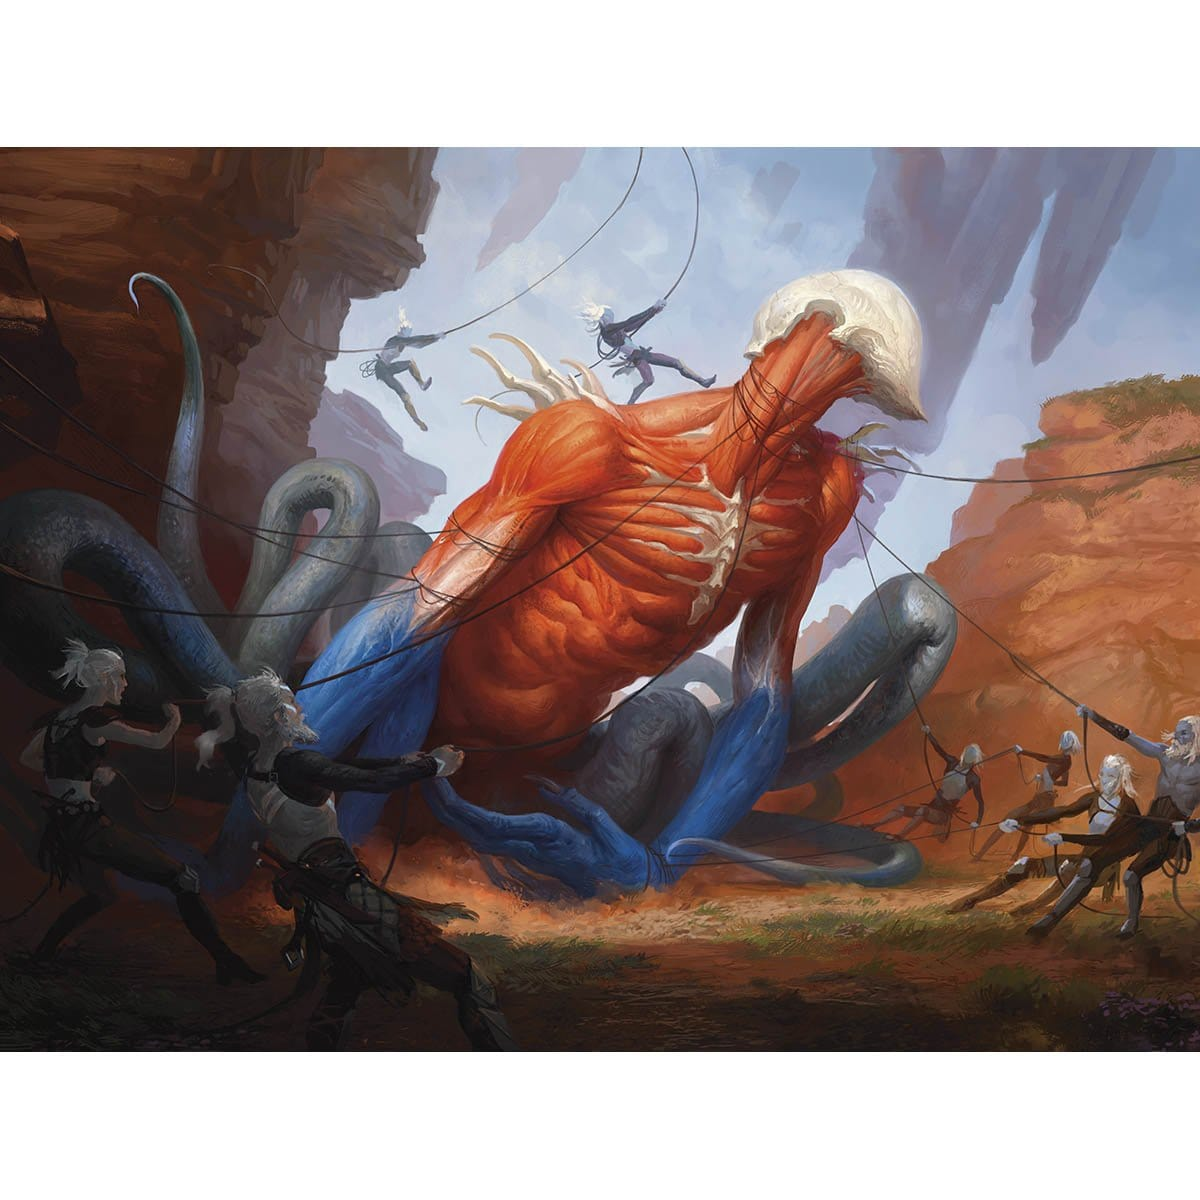 Smite the Monstrous Print - Print - Original Magic Art - Accessories for Magic the Gathering and other card games